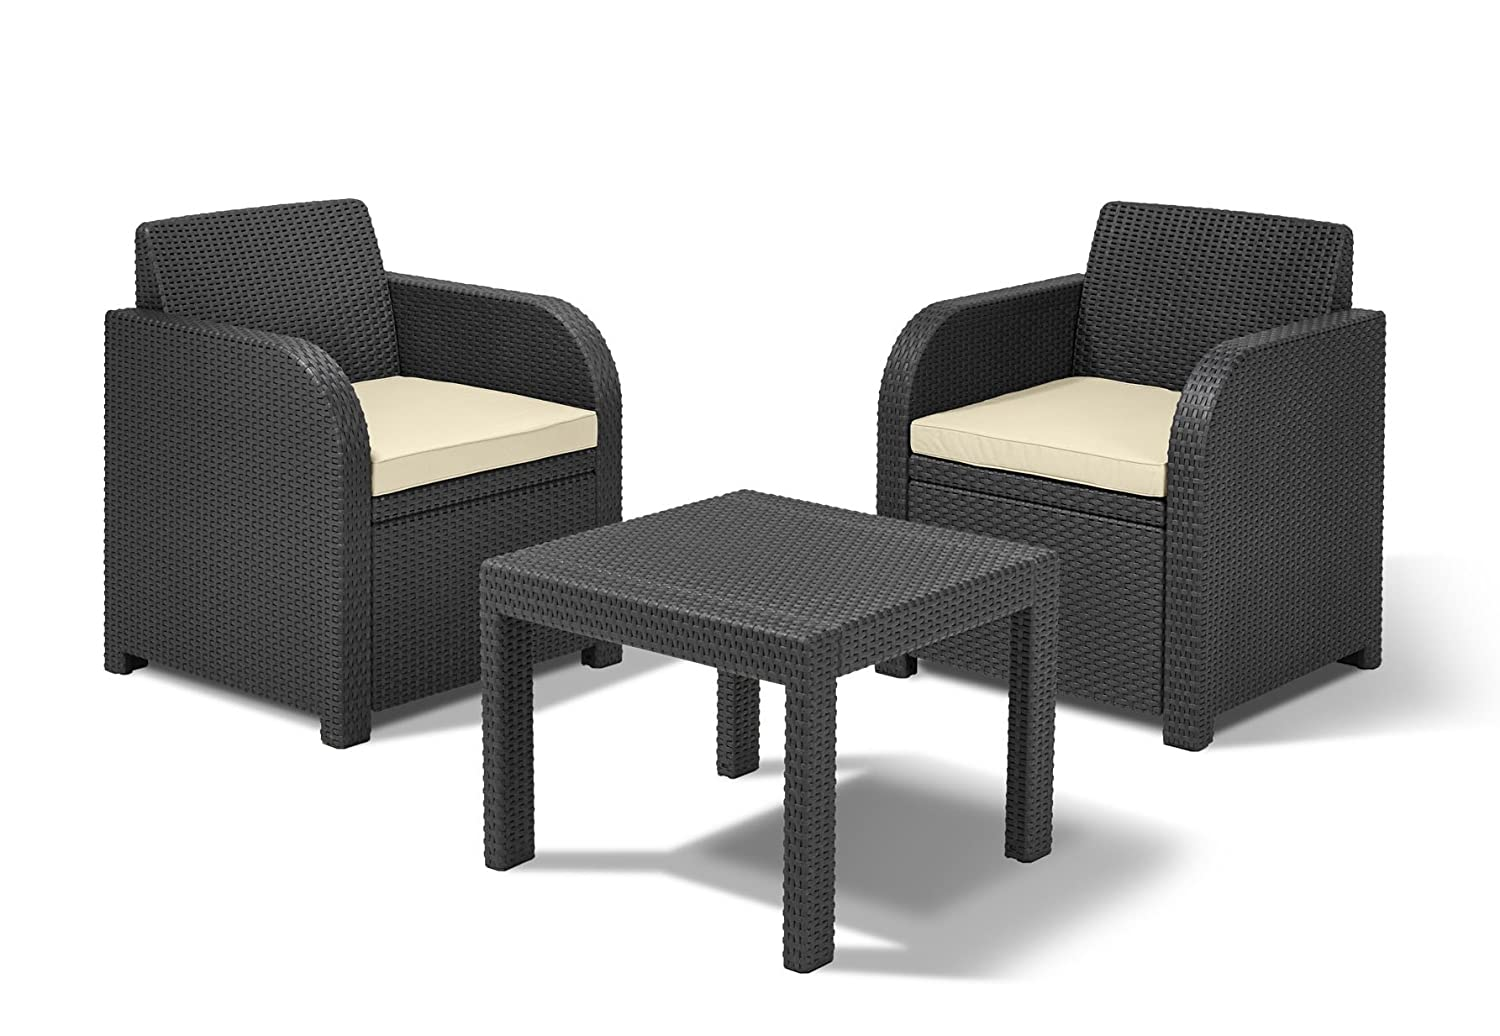 Allibert By Keter Atlanta 2 Seater Rattan Balcony Bistro Set Outdoor Garden  Furniture   Graphite With Cream Cushions: Amazon.co.uk: Garden U0026 Outdoors